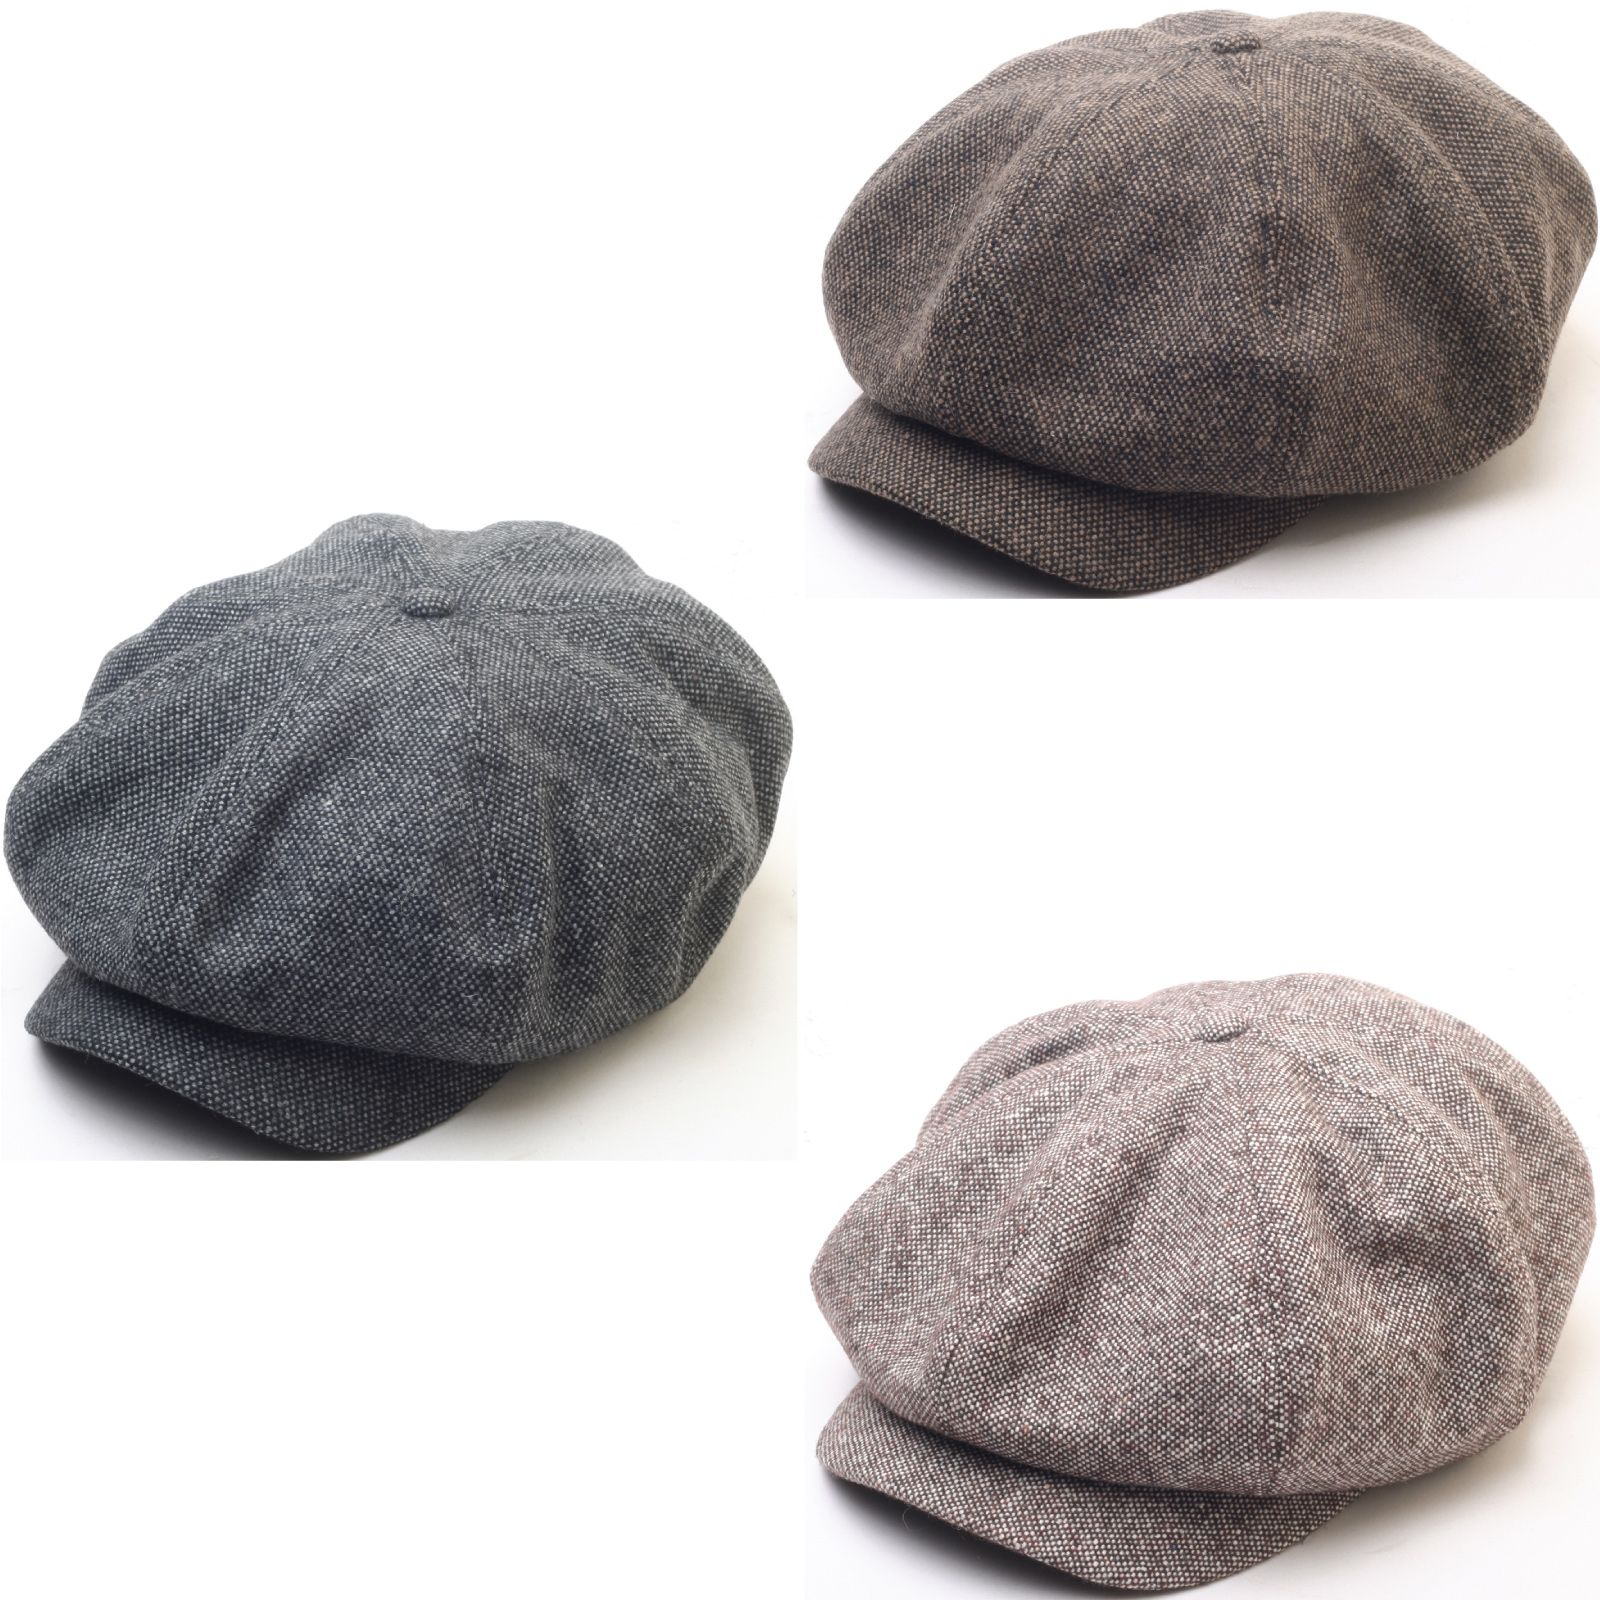 fa2b7809eb5 N124 8 Panel Homespun Harris Donegal Tweed Pattern Fabric Newsboy Cap  Gatsby Hat